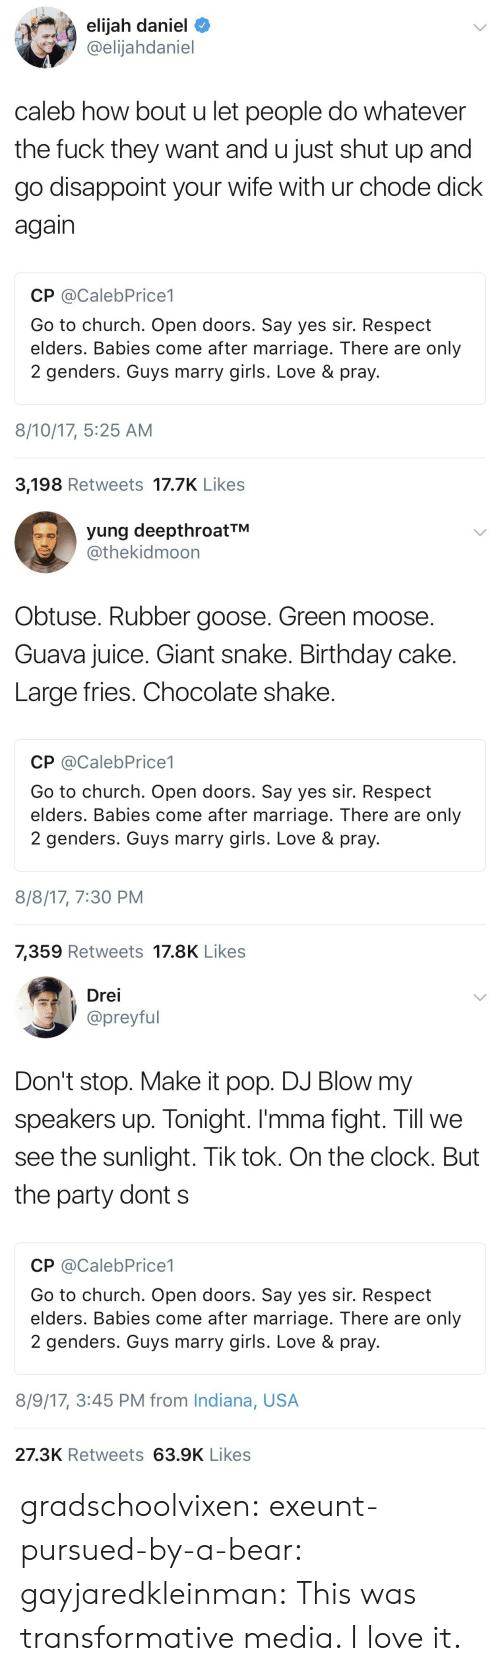 Large Fries Chocolate Shake: elijah daniel  @elijahdaniel  caleb how bout u let people do whatever  the fuck they want and u just shut up and  go disappoint your wife with ur chode dick  again  CP @CalebPrice1  Go to church. Open doors. Say yes sir. Respect  elders. Babies come after marriage. There are only  2 genders. Guys marry girls. Love & pray.  8/10/17, 5:25 AM  3,198 Retweets 17.7K Like:s   yung deepthroatTM  @thekidmoon  Obtuse. Rubber goose. Green moose.  Guava juice. Giant snake. Birthday cake  Large fries. Chocolate shake  CP @CalebPrice1  Go to church. Open doors. Say yes sir. Respect  elders. Babies come after marriage. There are only  2 genders. Guys marry girls. Love & pray  8/8/17, 7:30 PM  7,359 Retweets 17.8K Likes   Drei  preyful  Don't stop. Make it pop. DJ Blow my  speakers up. Tonight. I'mma fight. Till we  see the sunlight. Tik tok. On the clock. But  the party dont s  CP @CalebPrice1  Go to church. Open doors. Say yes sir. Respect  elders. Babies come after marriage. There are only  2 genders. Guys marry girls. Love & pray  8/9/17, 3:45 PM from Indiana, USA  27.3K Retweets 63.9K Likes gradschoolvixen: exeunt-pursued-by-a-bear:  gayjaredkleinman:    This was transformative media. I love it.